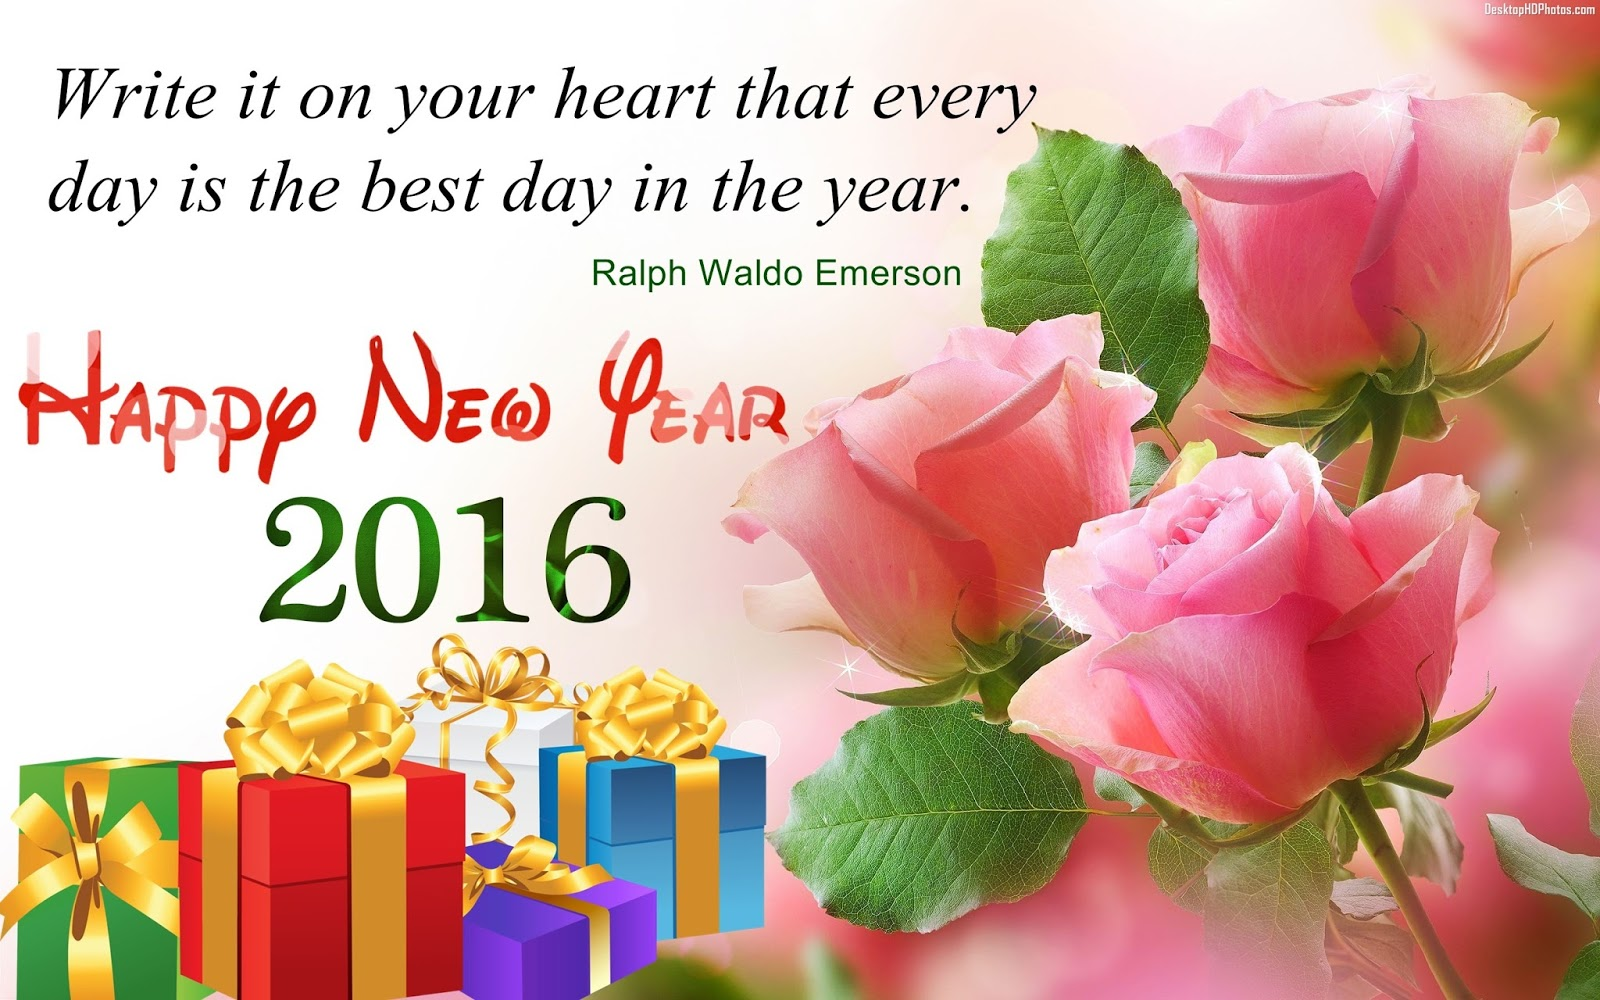 New Year Greeting Quotes 2016 Pictures Hdrwalls